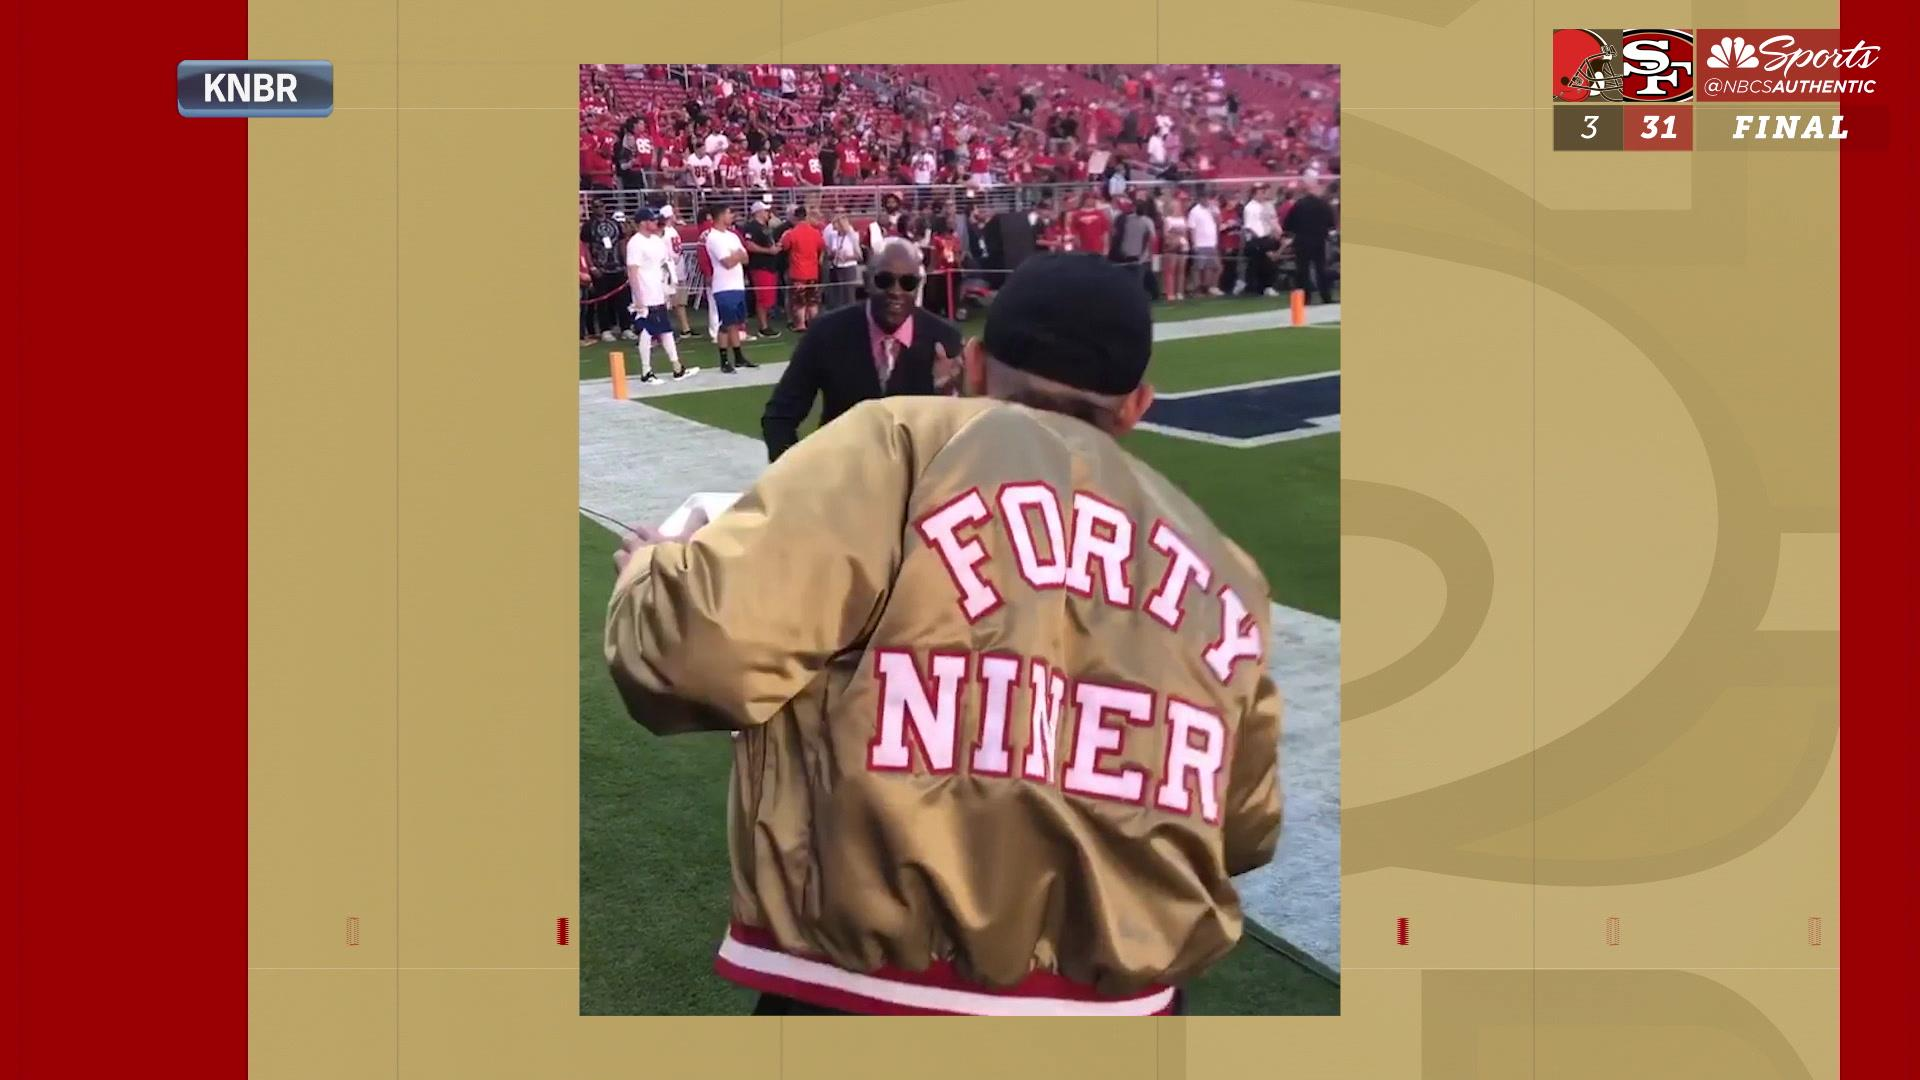 Rapper, 49ers fan P-Lo discusses dancing with Jerry Rice before